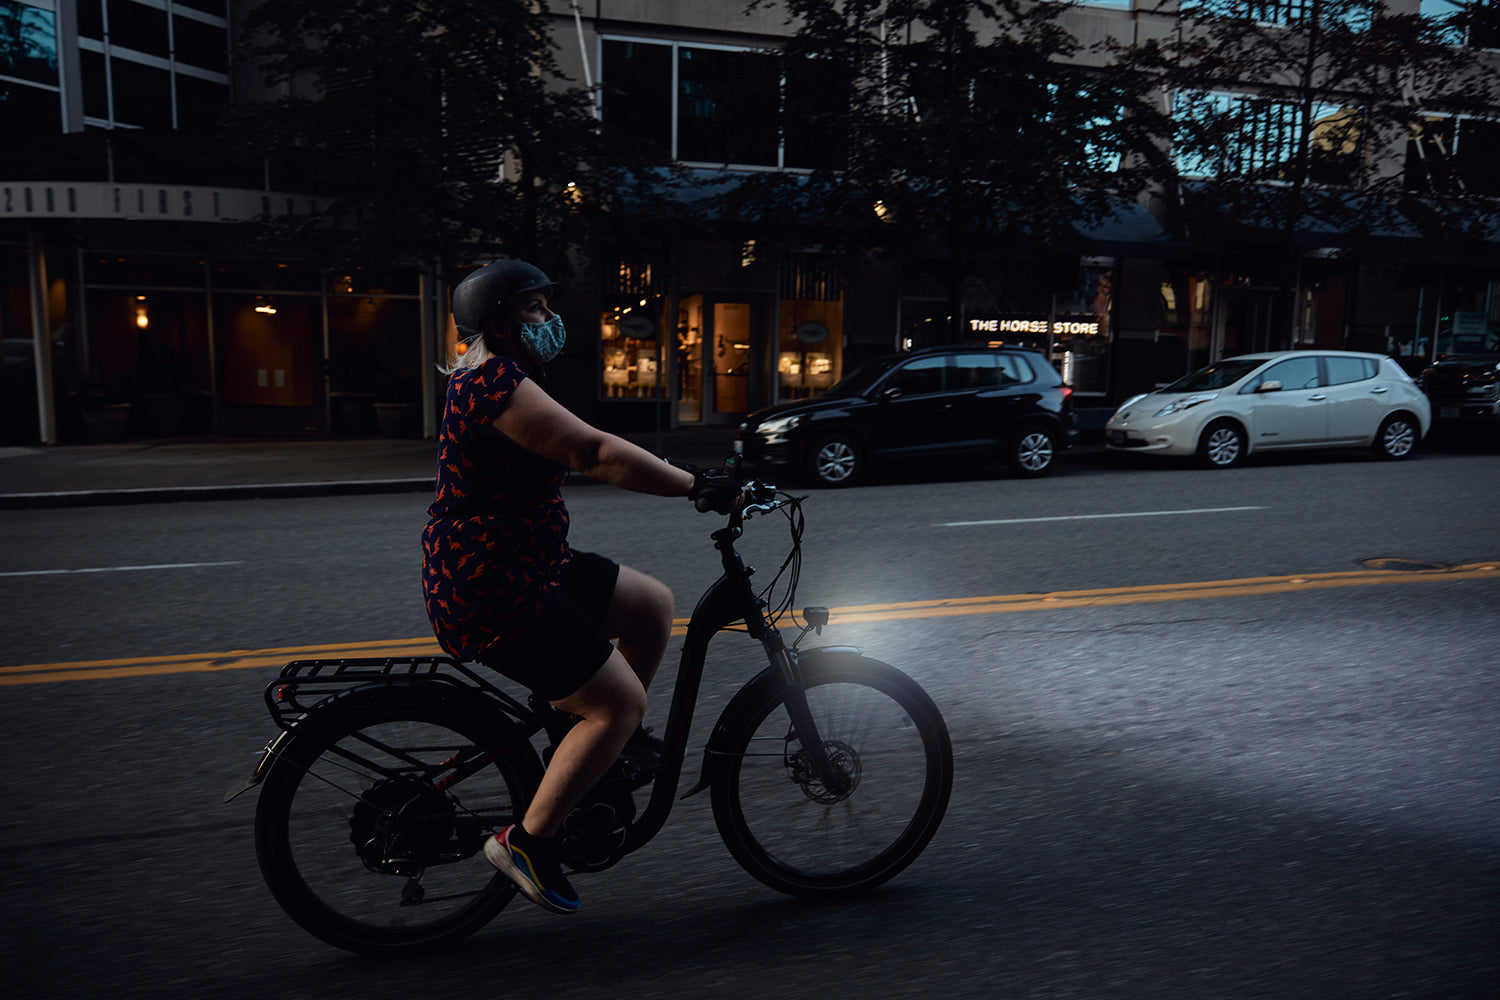 A woman rides a RadCity on an urban street at night.